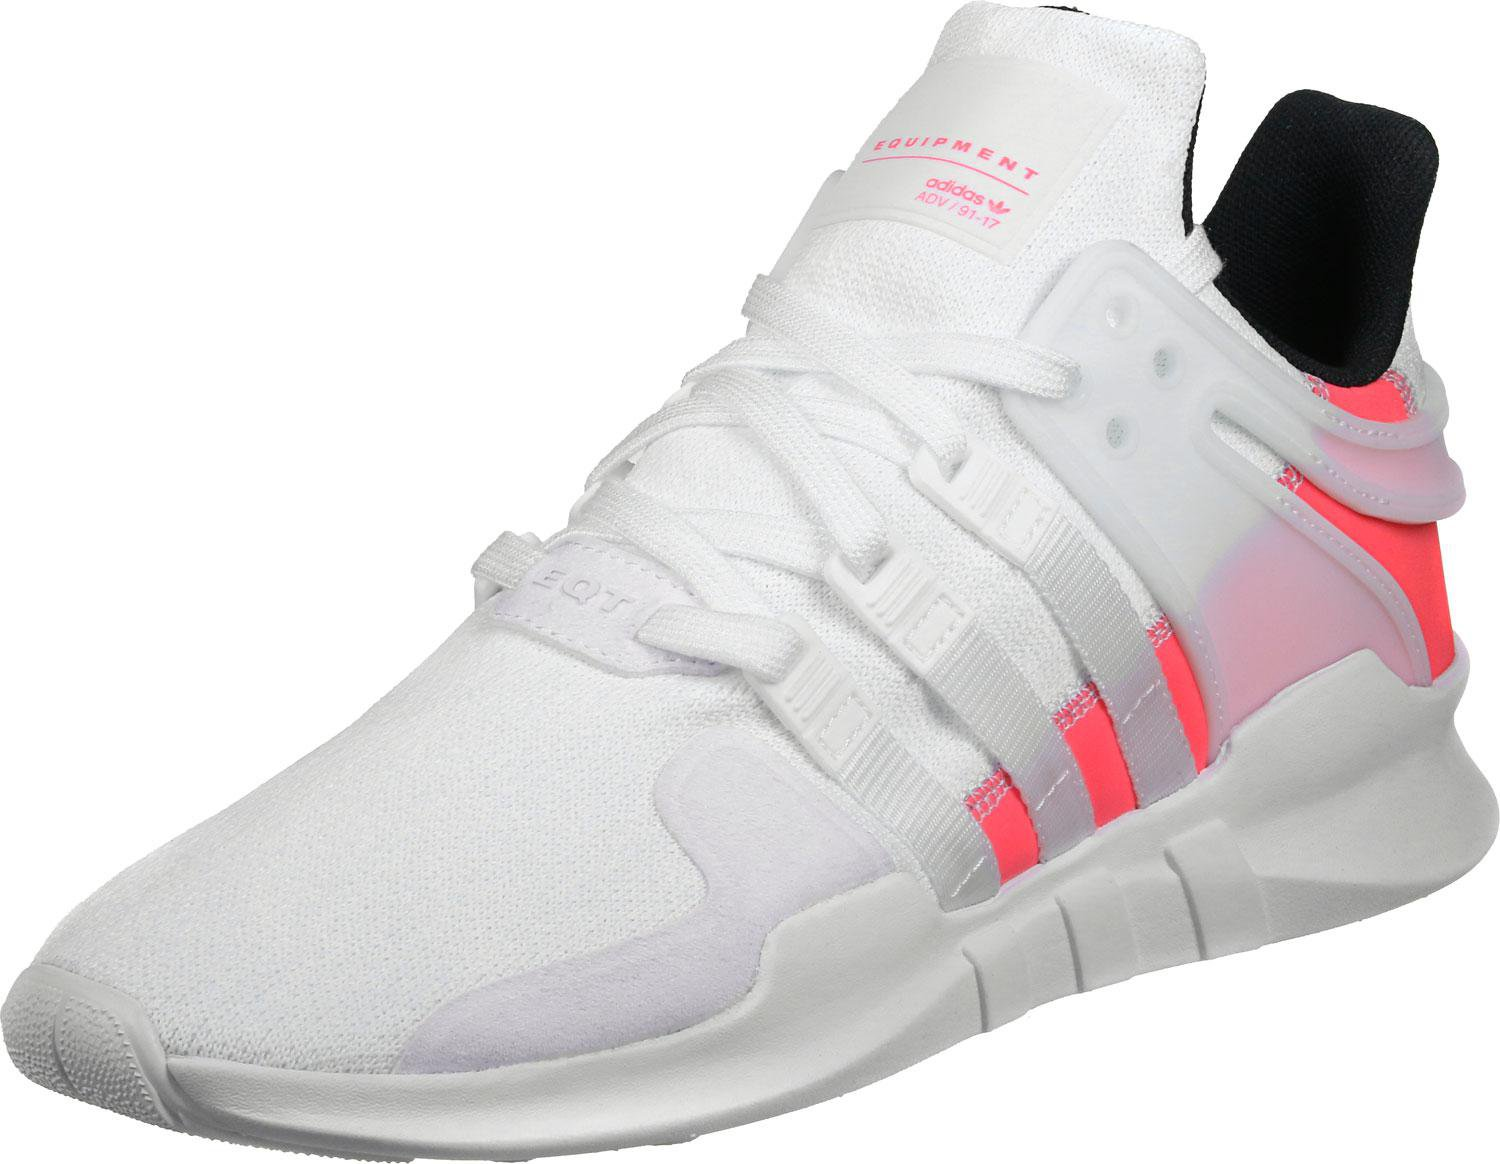 Adidas EQT Support ADV Low Top Sneaker